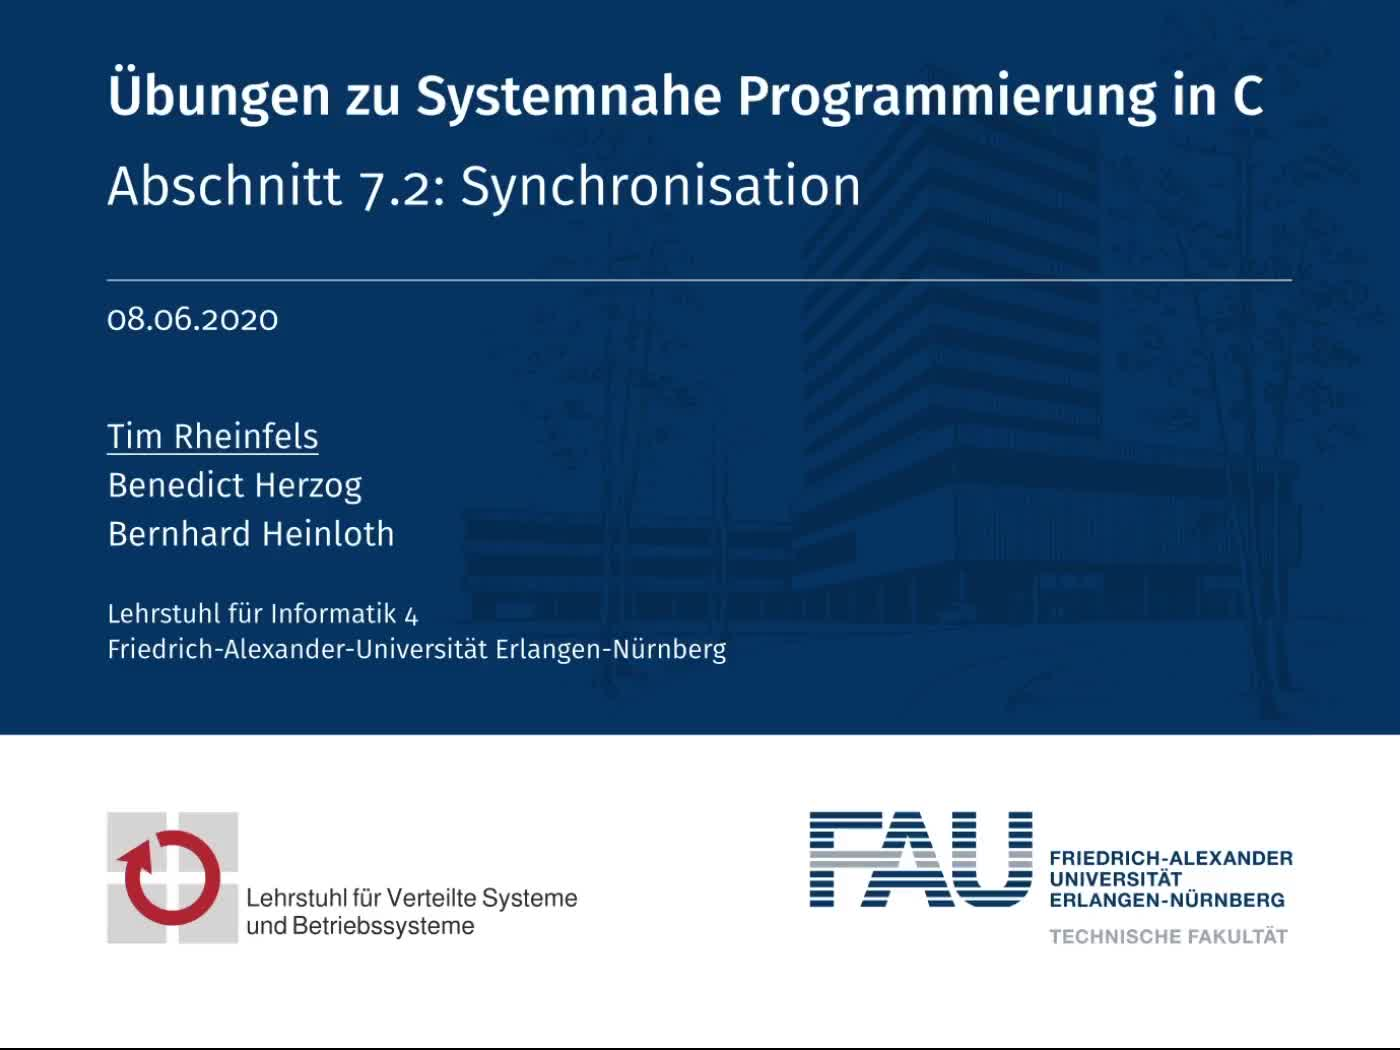 07.2: Synchronisation preview image